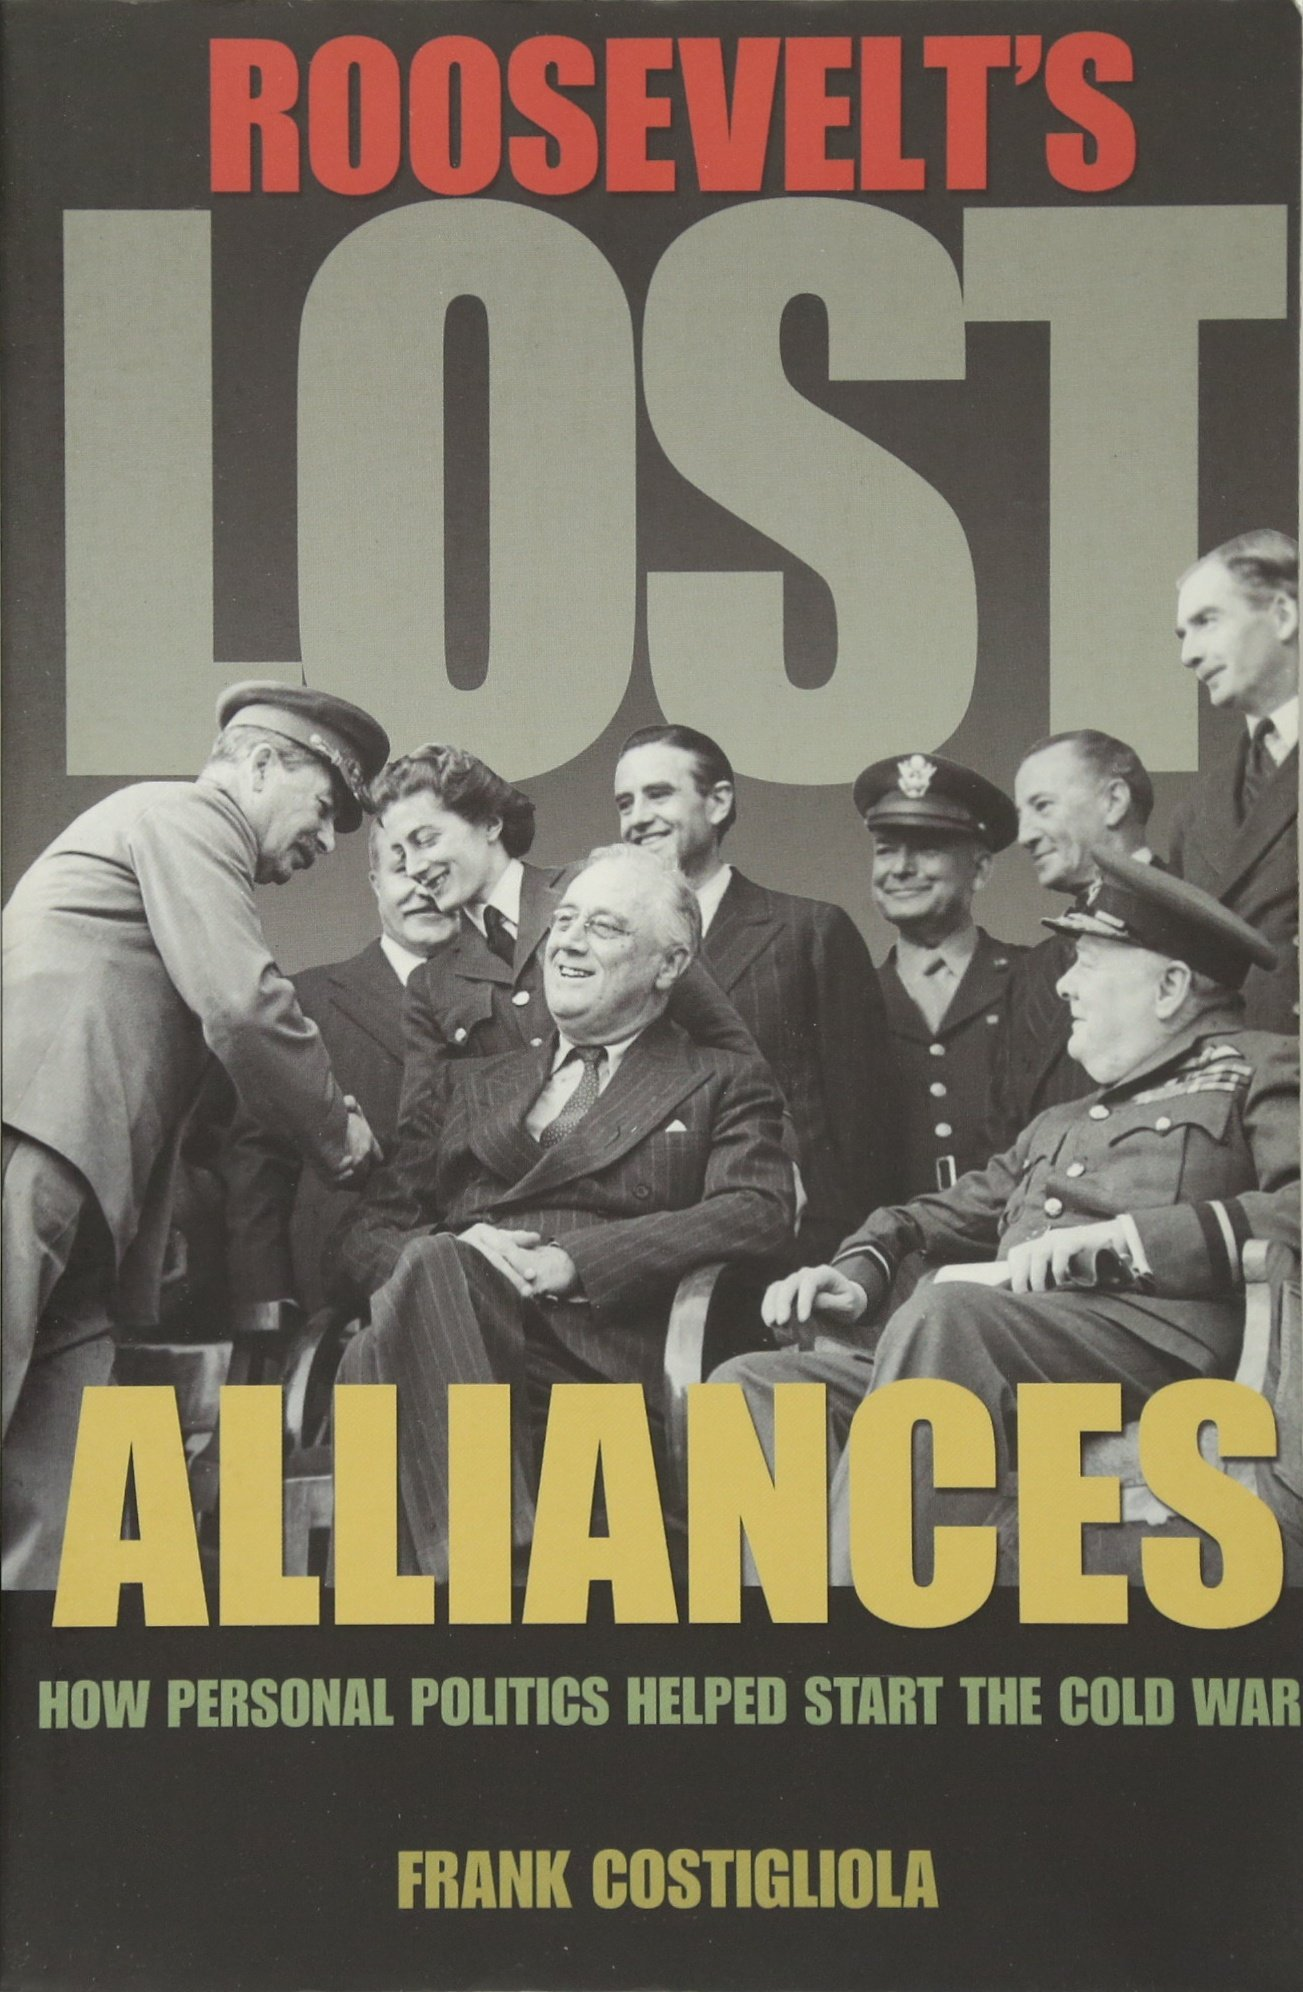 Roosevelts Lost Alliances How Personal Politics Helped Start The  Roosevelts Lost Alliances How Personal Politics Helped Start The Cold War  Frank Costigliola  Amazoncom Books How To Learn English Essay also Mail Order Plant Business For Sale  Help Writing A Assignment